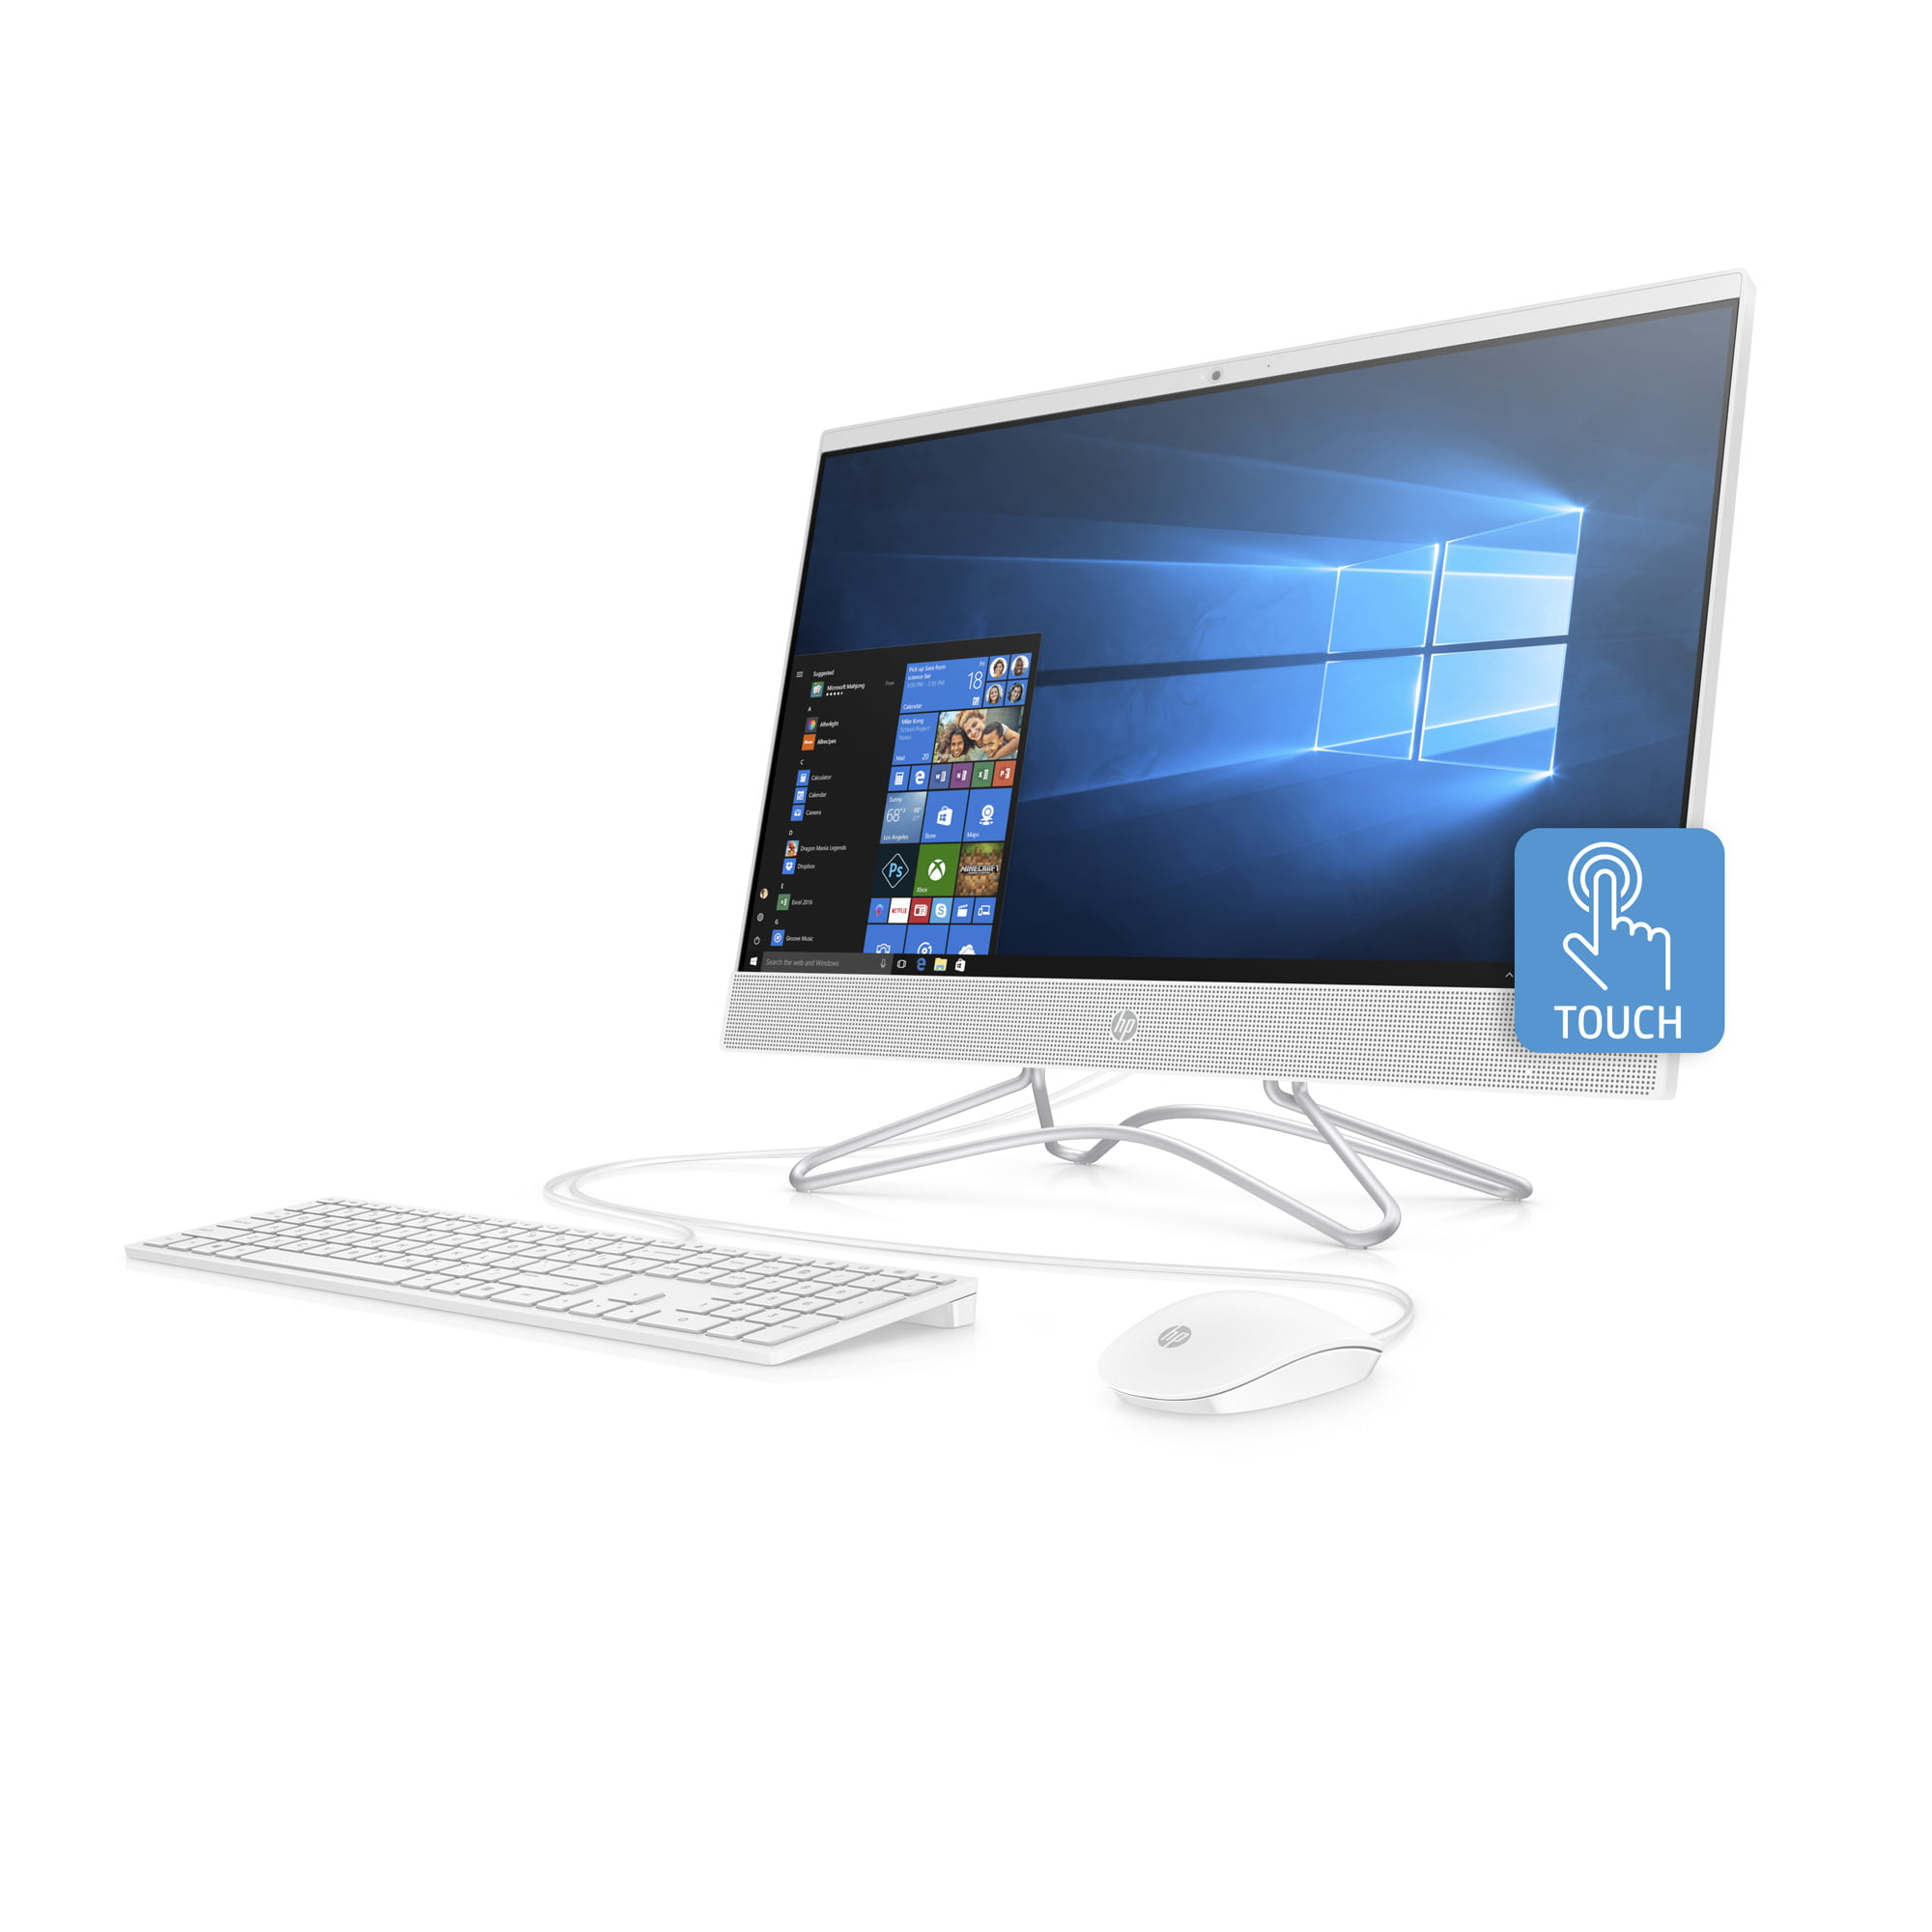 Hp 24 F0040 Snow White Touch All In One Pc Amd A9 9425 Processor 8gb Memory 1tb Hard Drive Amd Uma Graphics Windows 10 Dvd Keyboard And Mouse Walmart Com Walmart Com